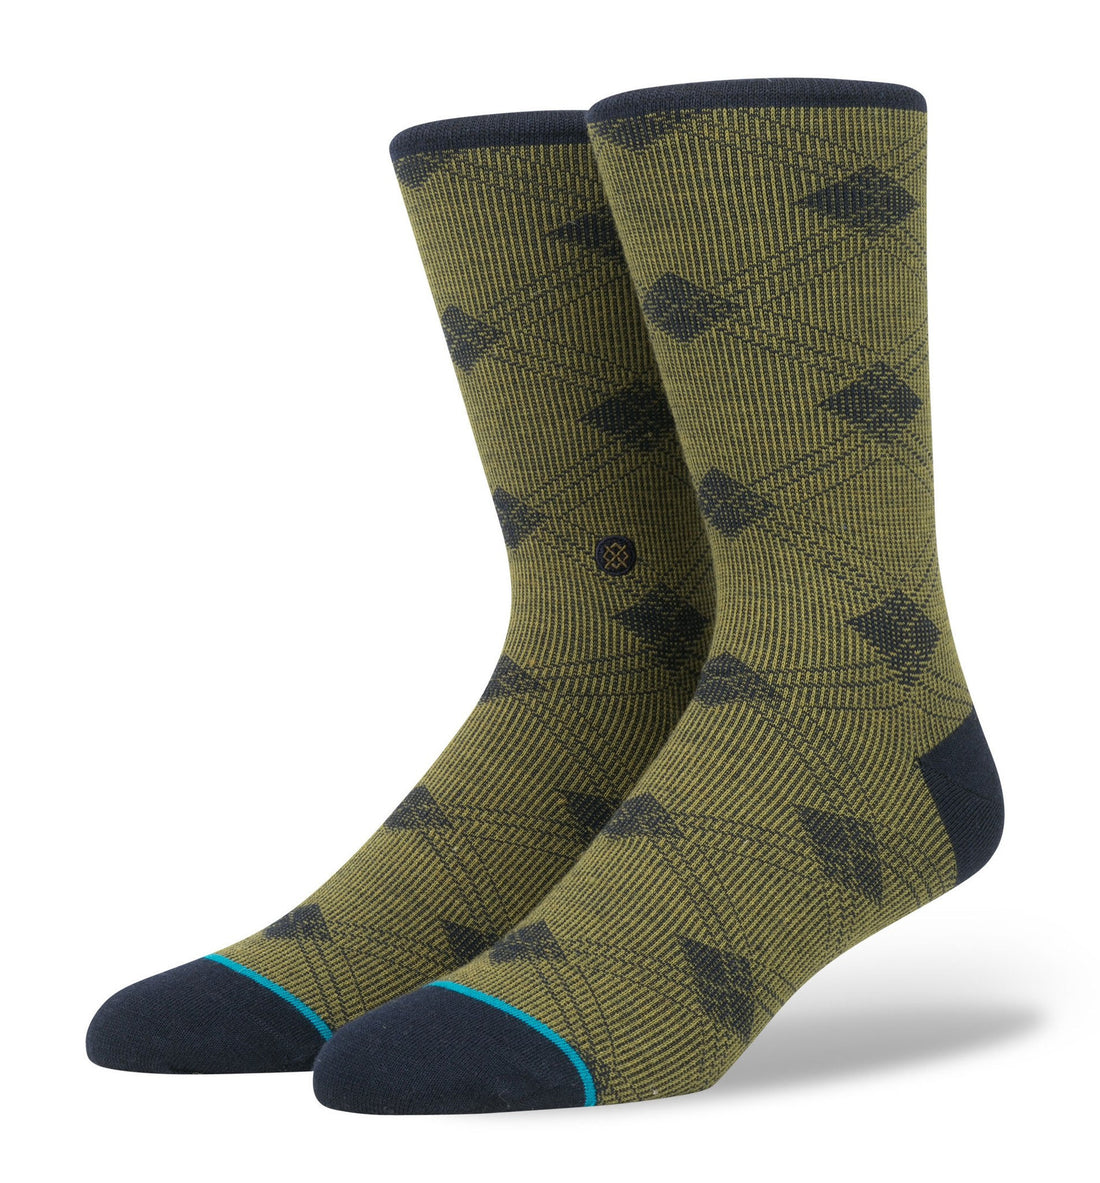 Stance Takeover Socks, L - Accessories: Socks - Iron and Resin